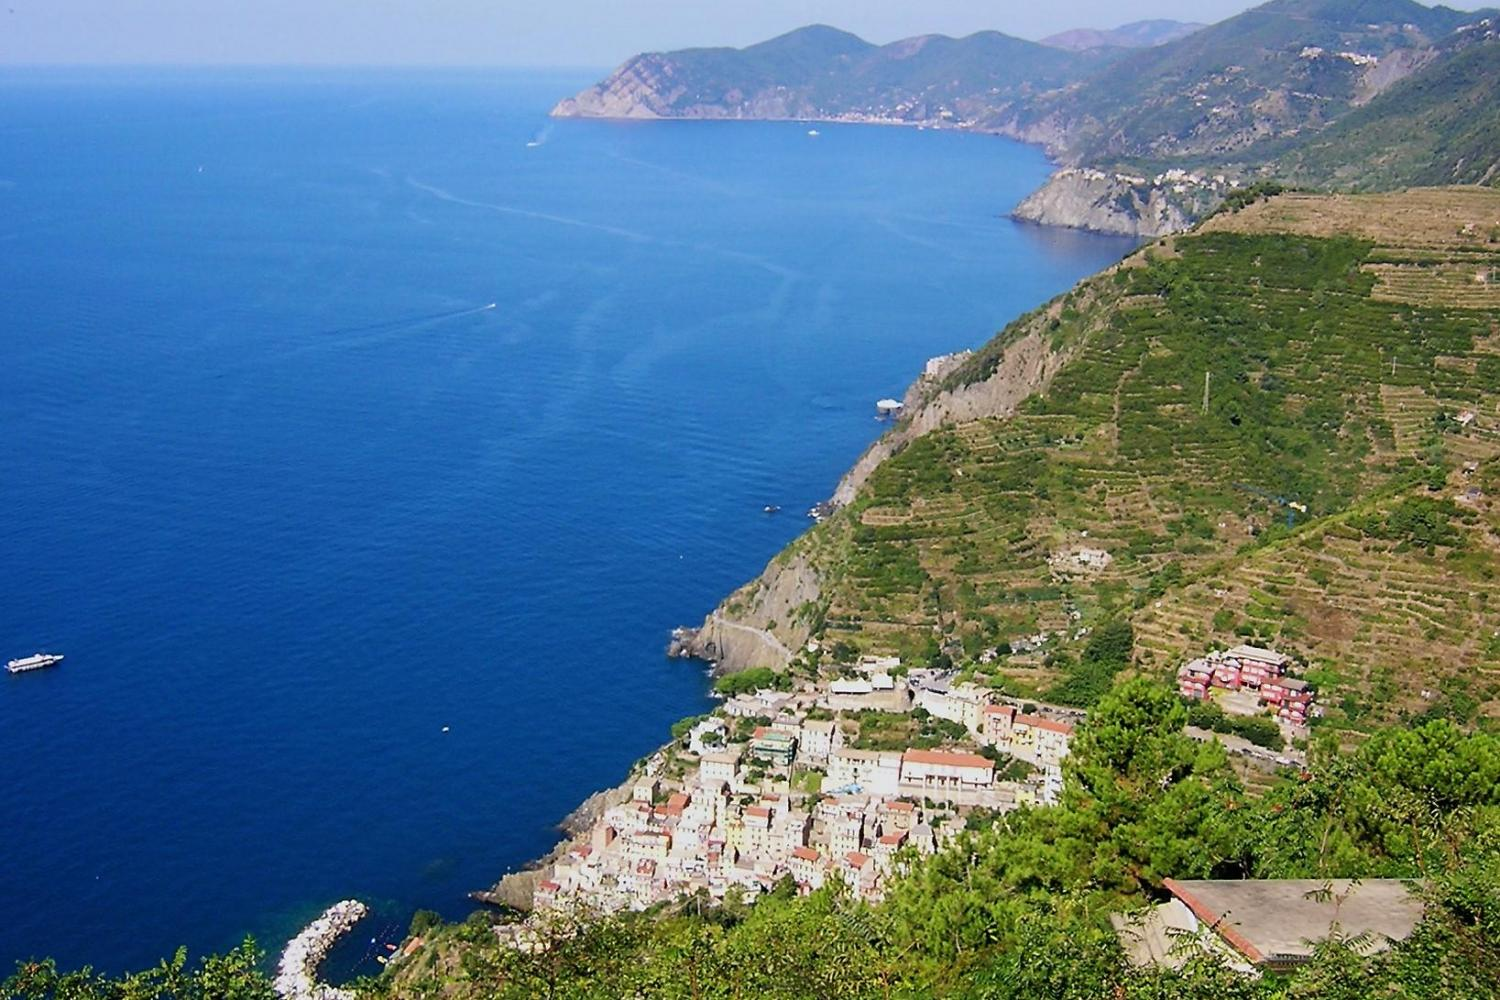 Incredible coast views throughout the Cinque Terre tour!